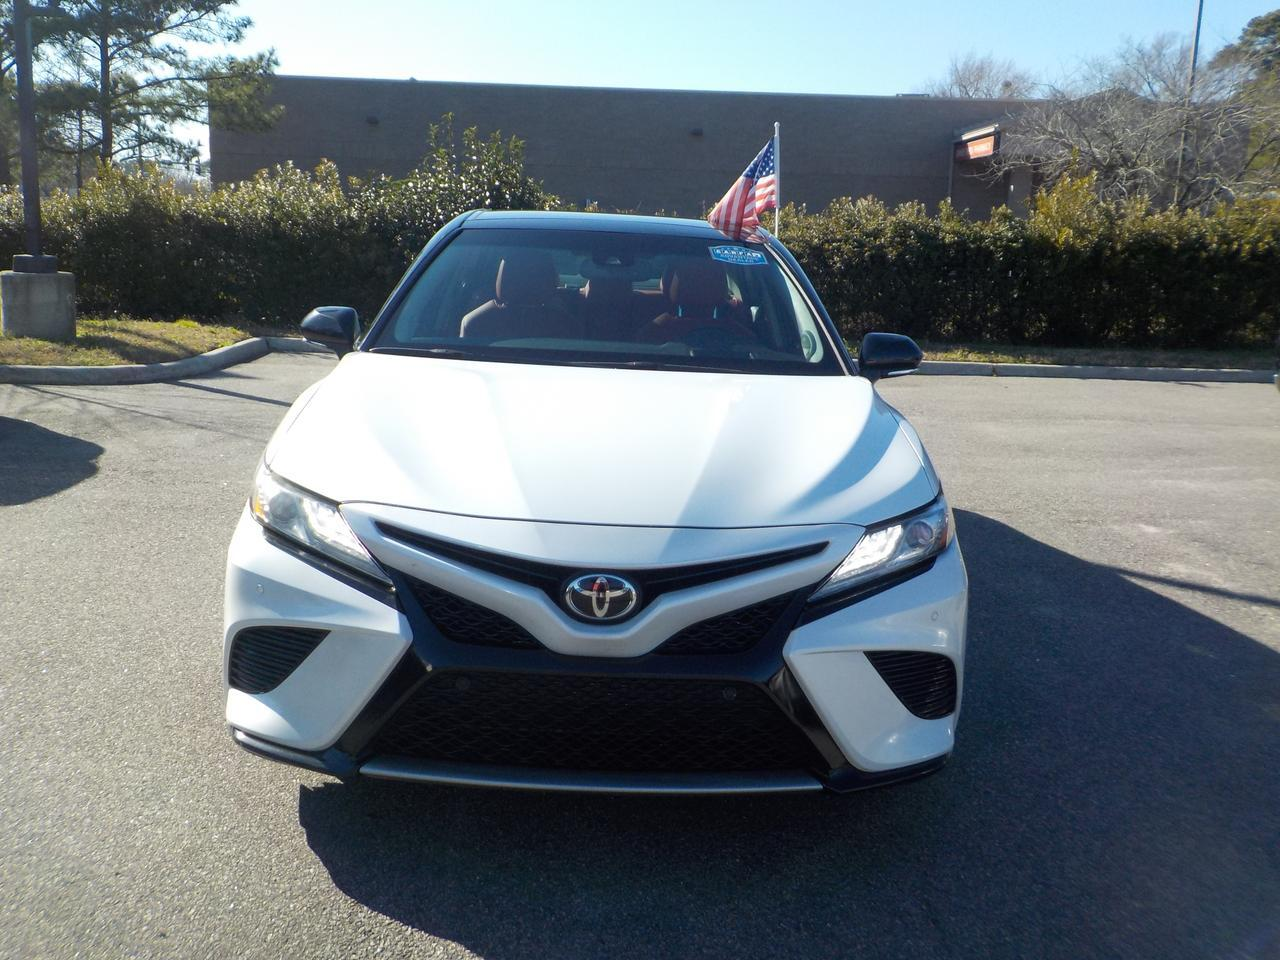 2018 TOYOTA CAMRY XSE FWD, ONE OWNER, PANO ROOF, HEATED LEATHER SEATS, BACKUP CAMERA, BLUETOOTH, ONLY 65K MILES! Virginia Beach VA